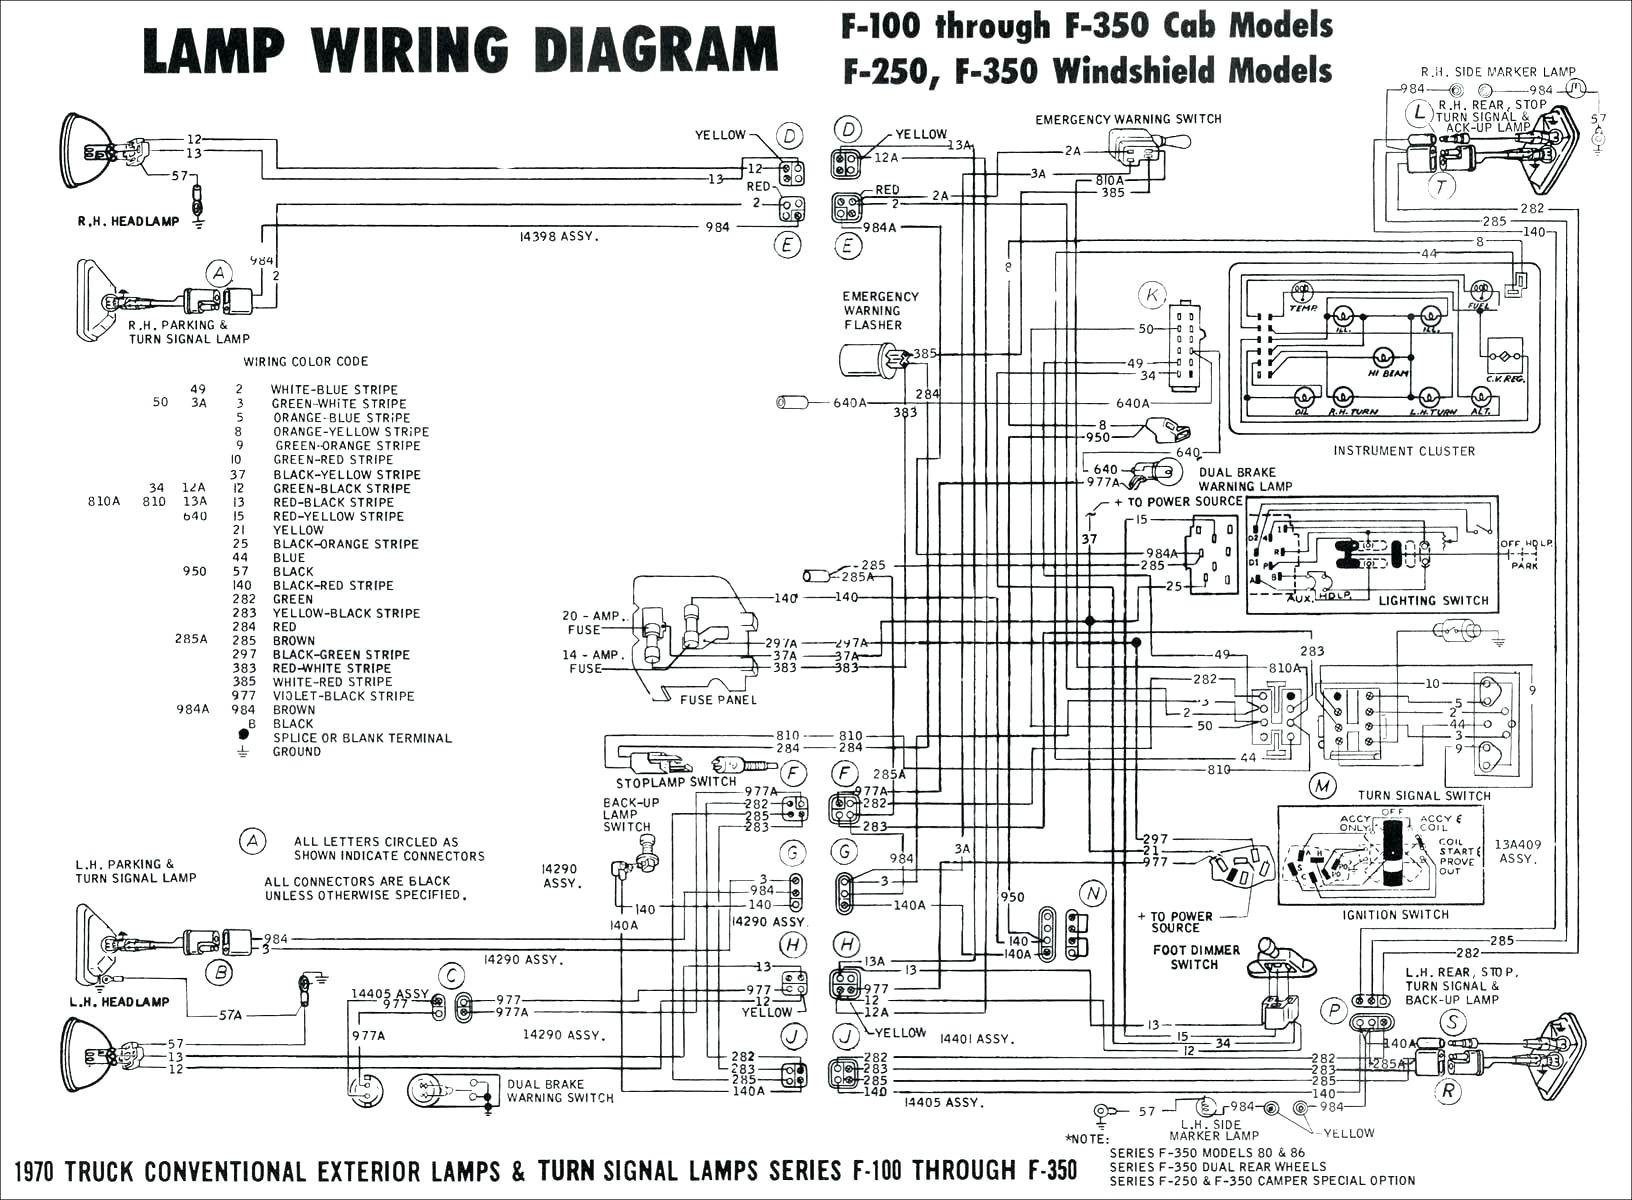 Ky 0694 Switch Wiring Diagram Champion Wiring Diagram